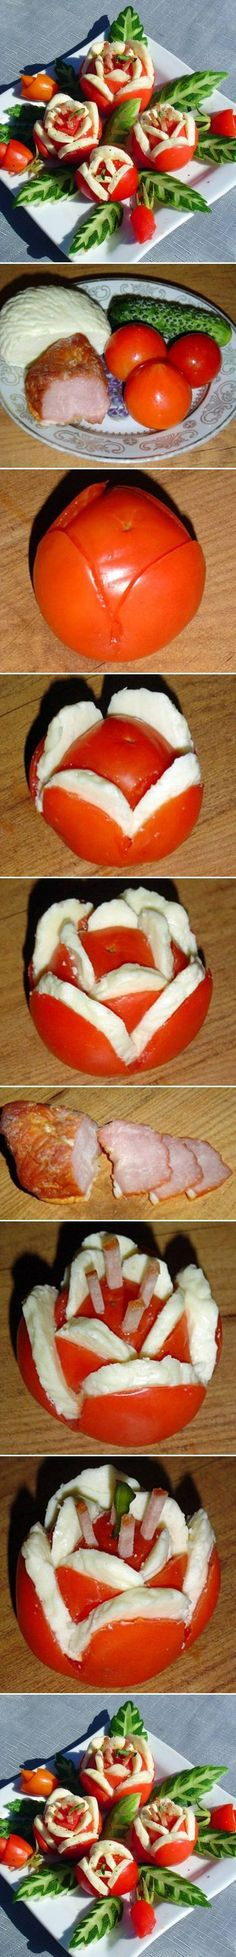 DIY Tomato Dish Decor DIY Projects